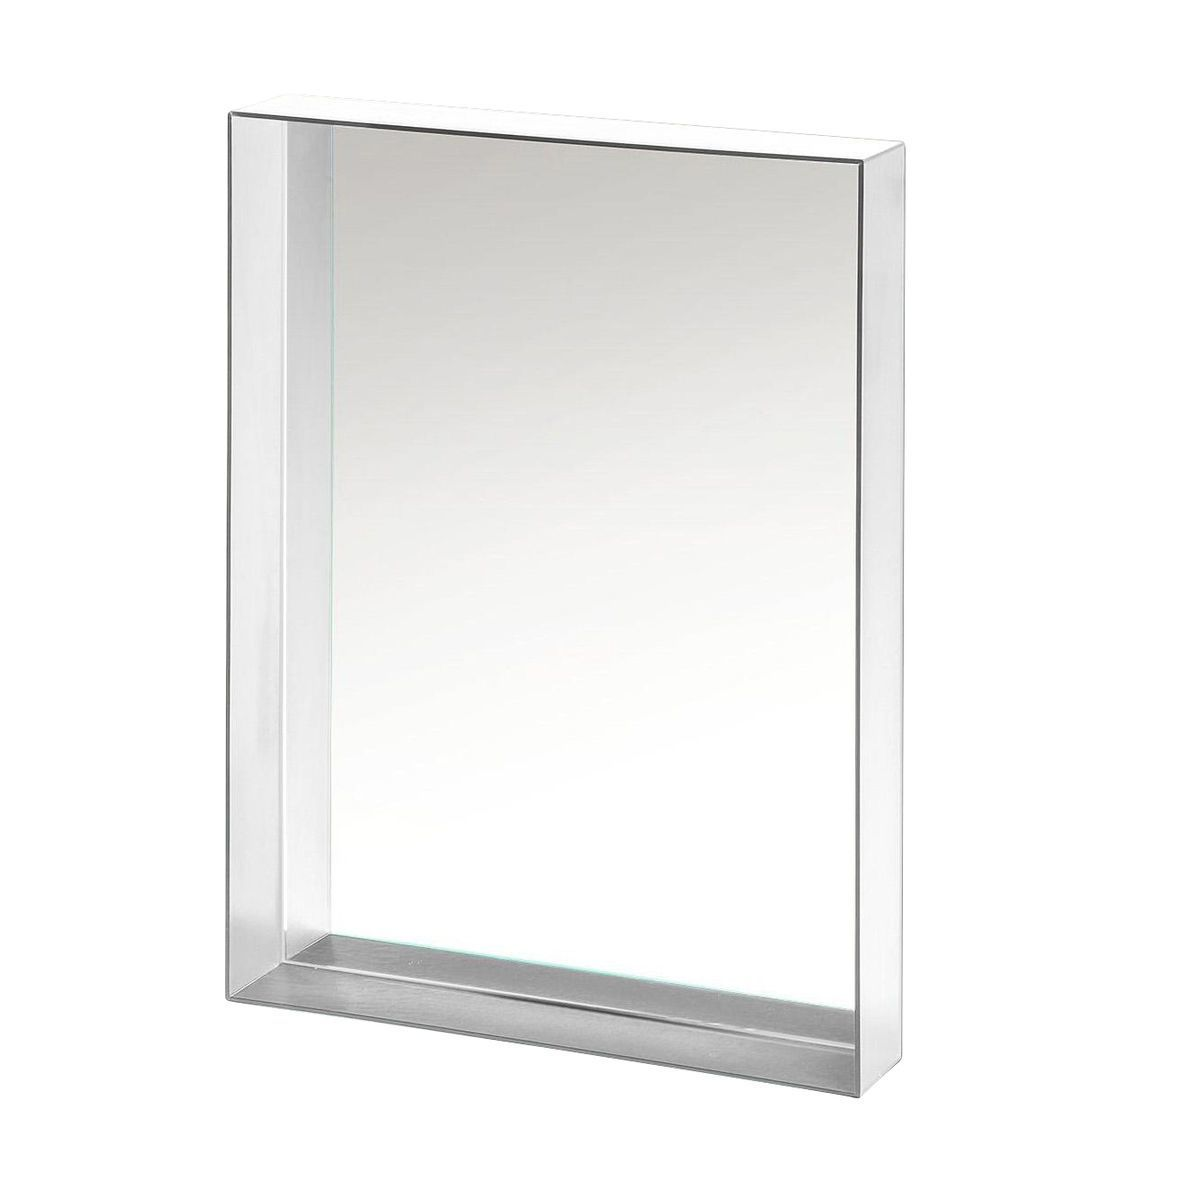 Only me mirror 50x70 kartell for Mirror 50 x 30